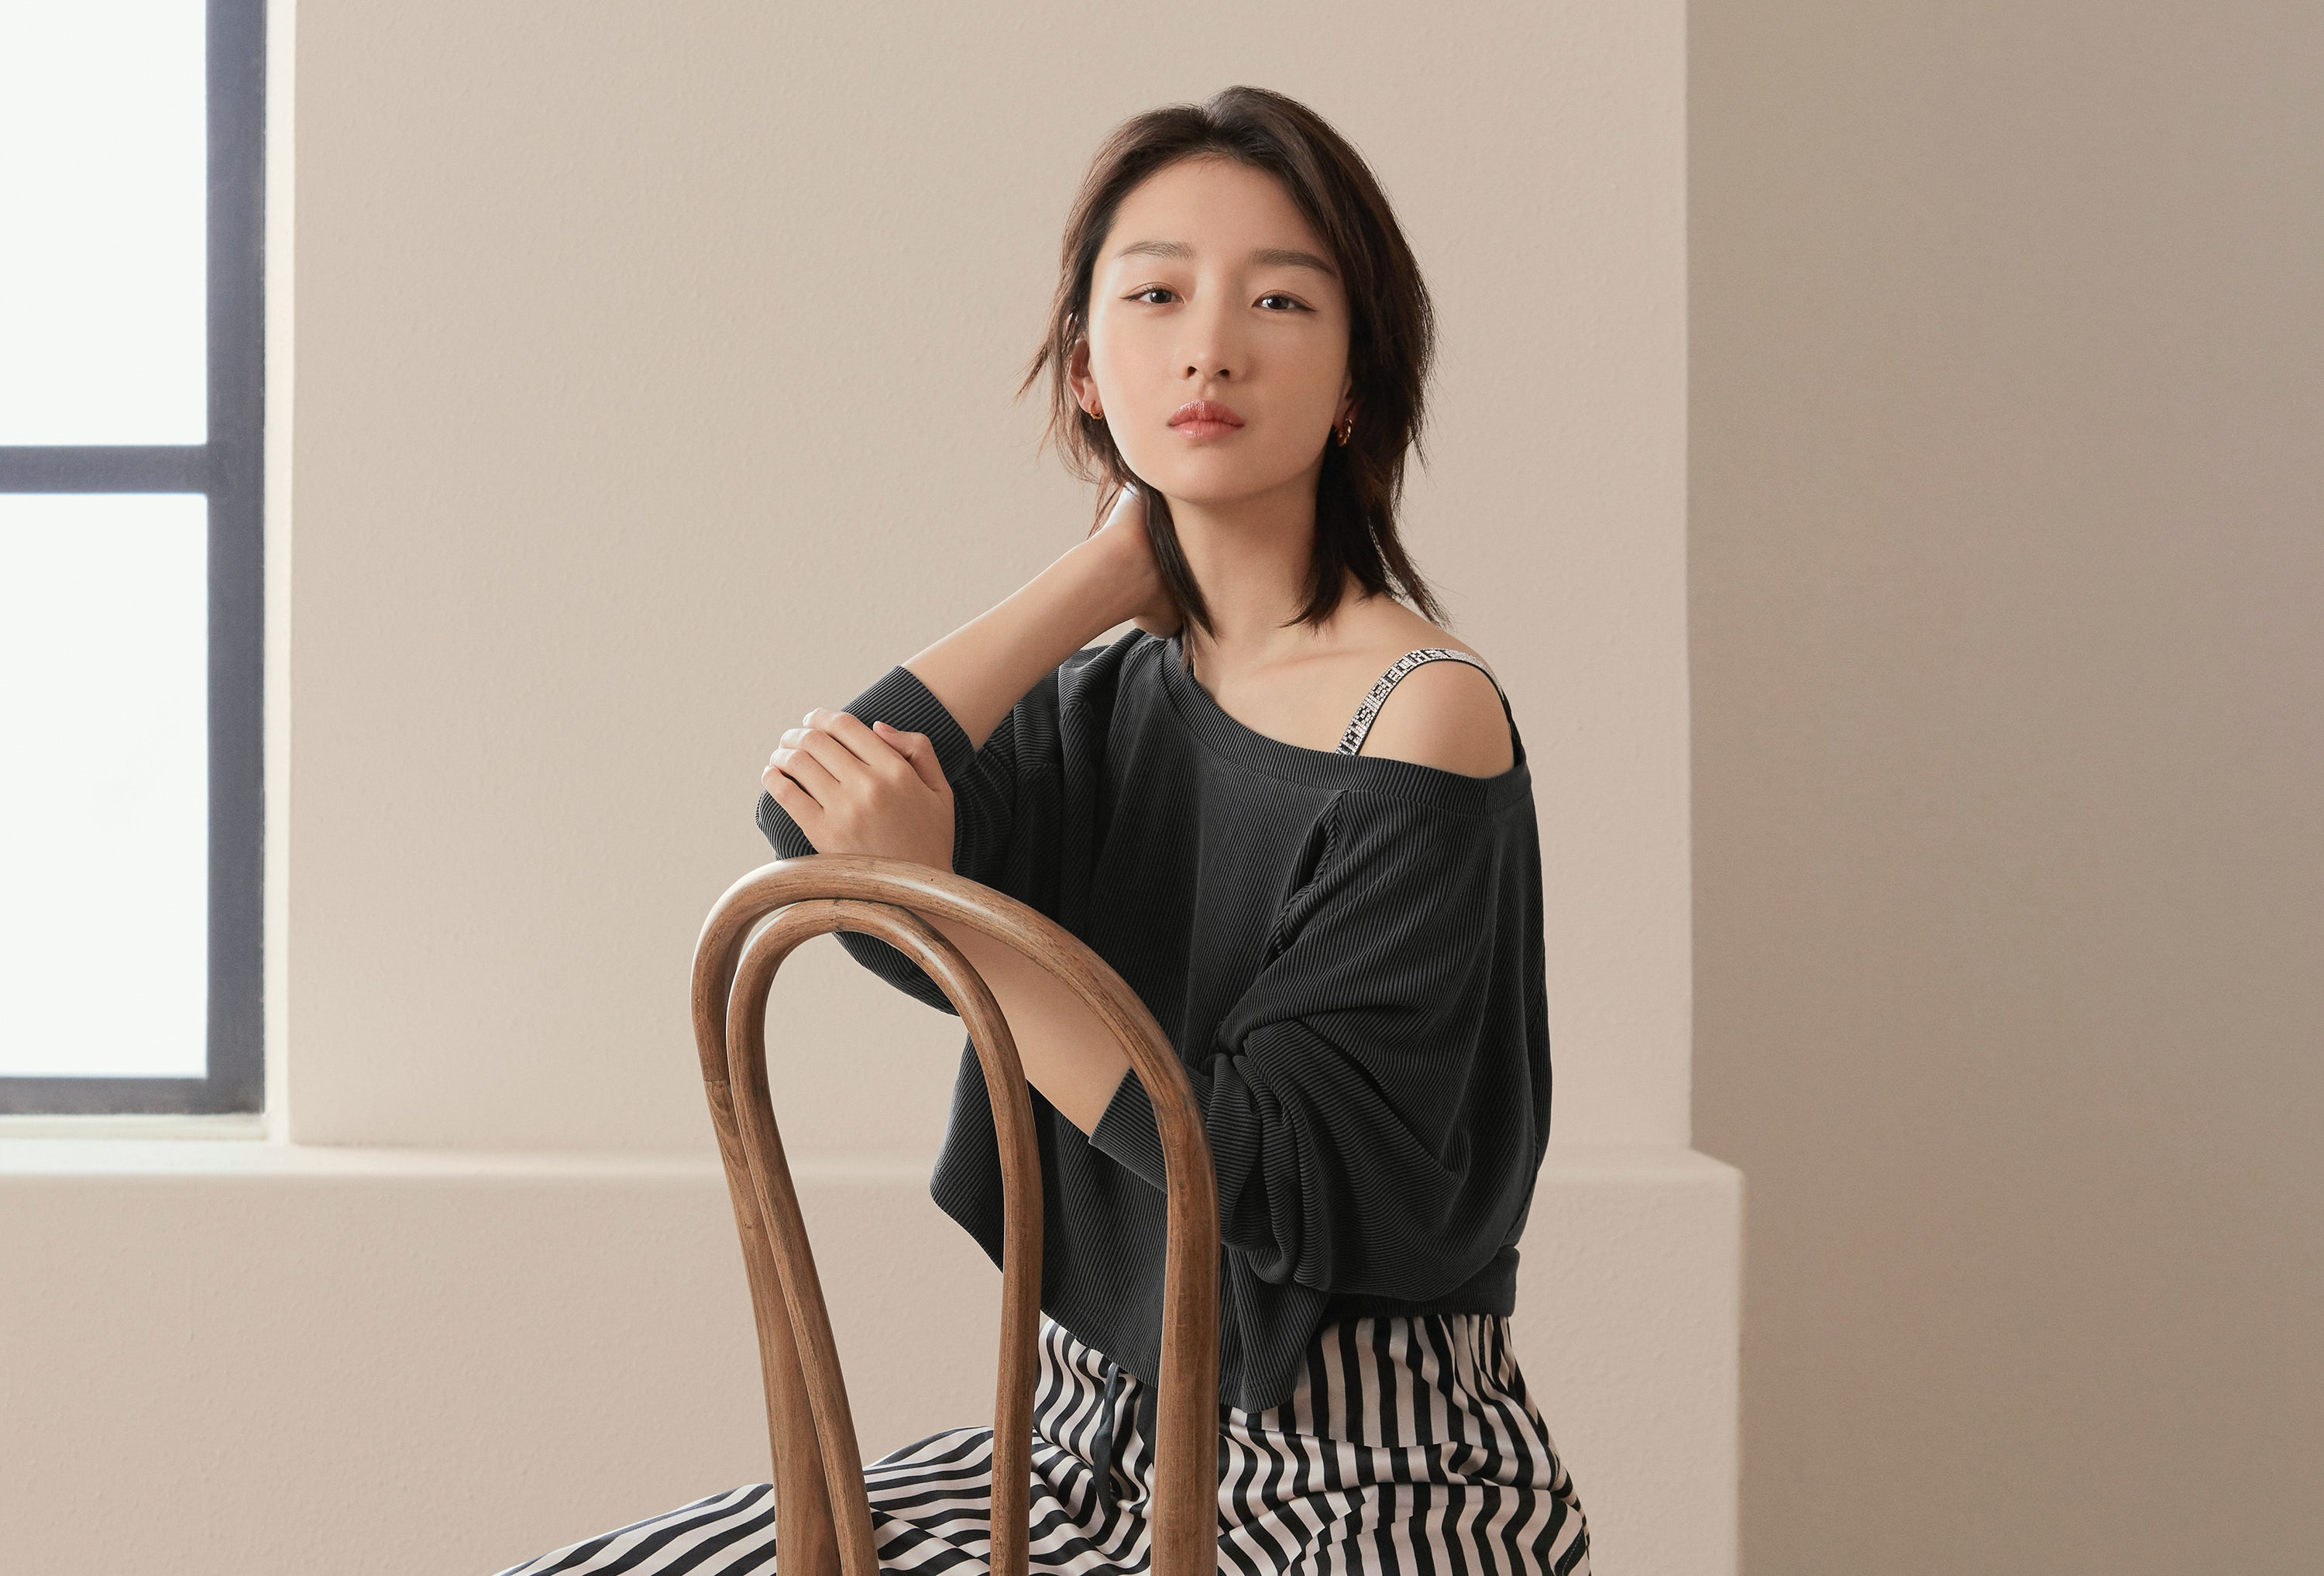 Actress Zhou Dongyu was named a Victoria's Secret ambassador in China in April 2020. Victoria's Secret.